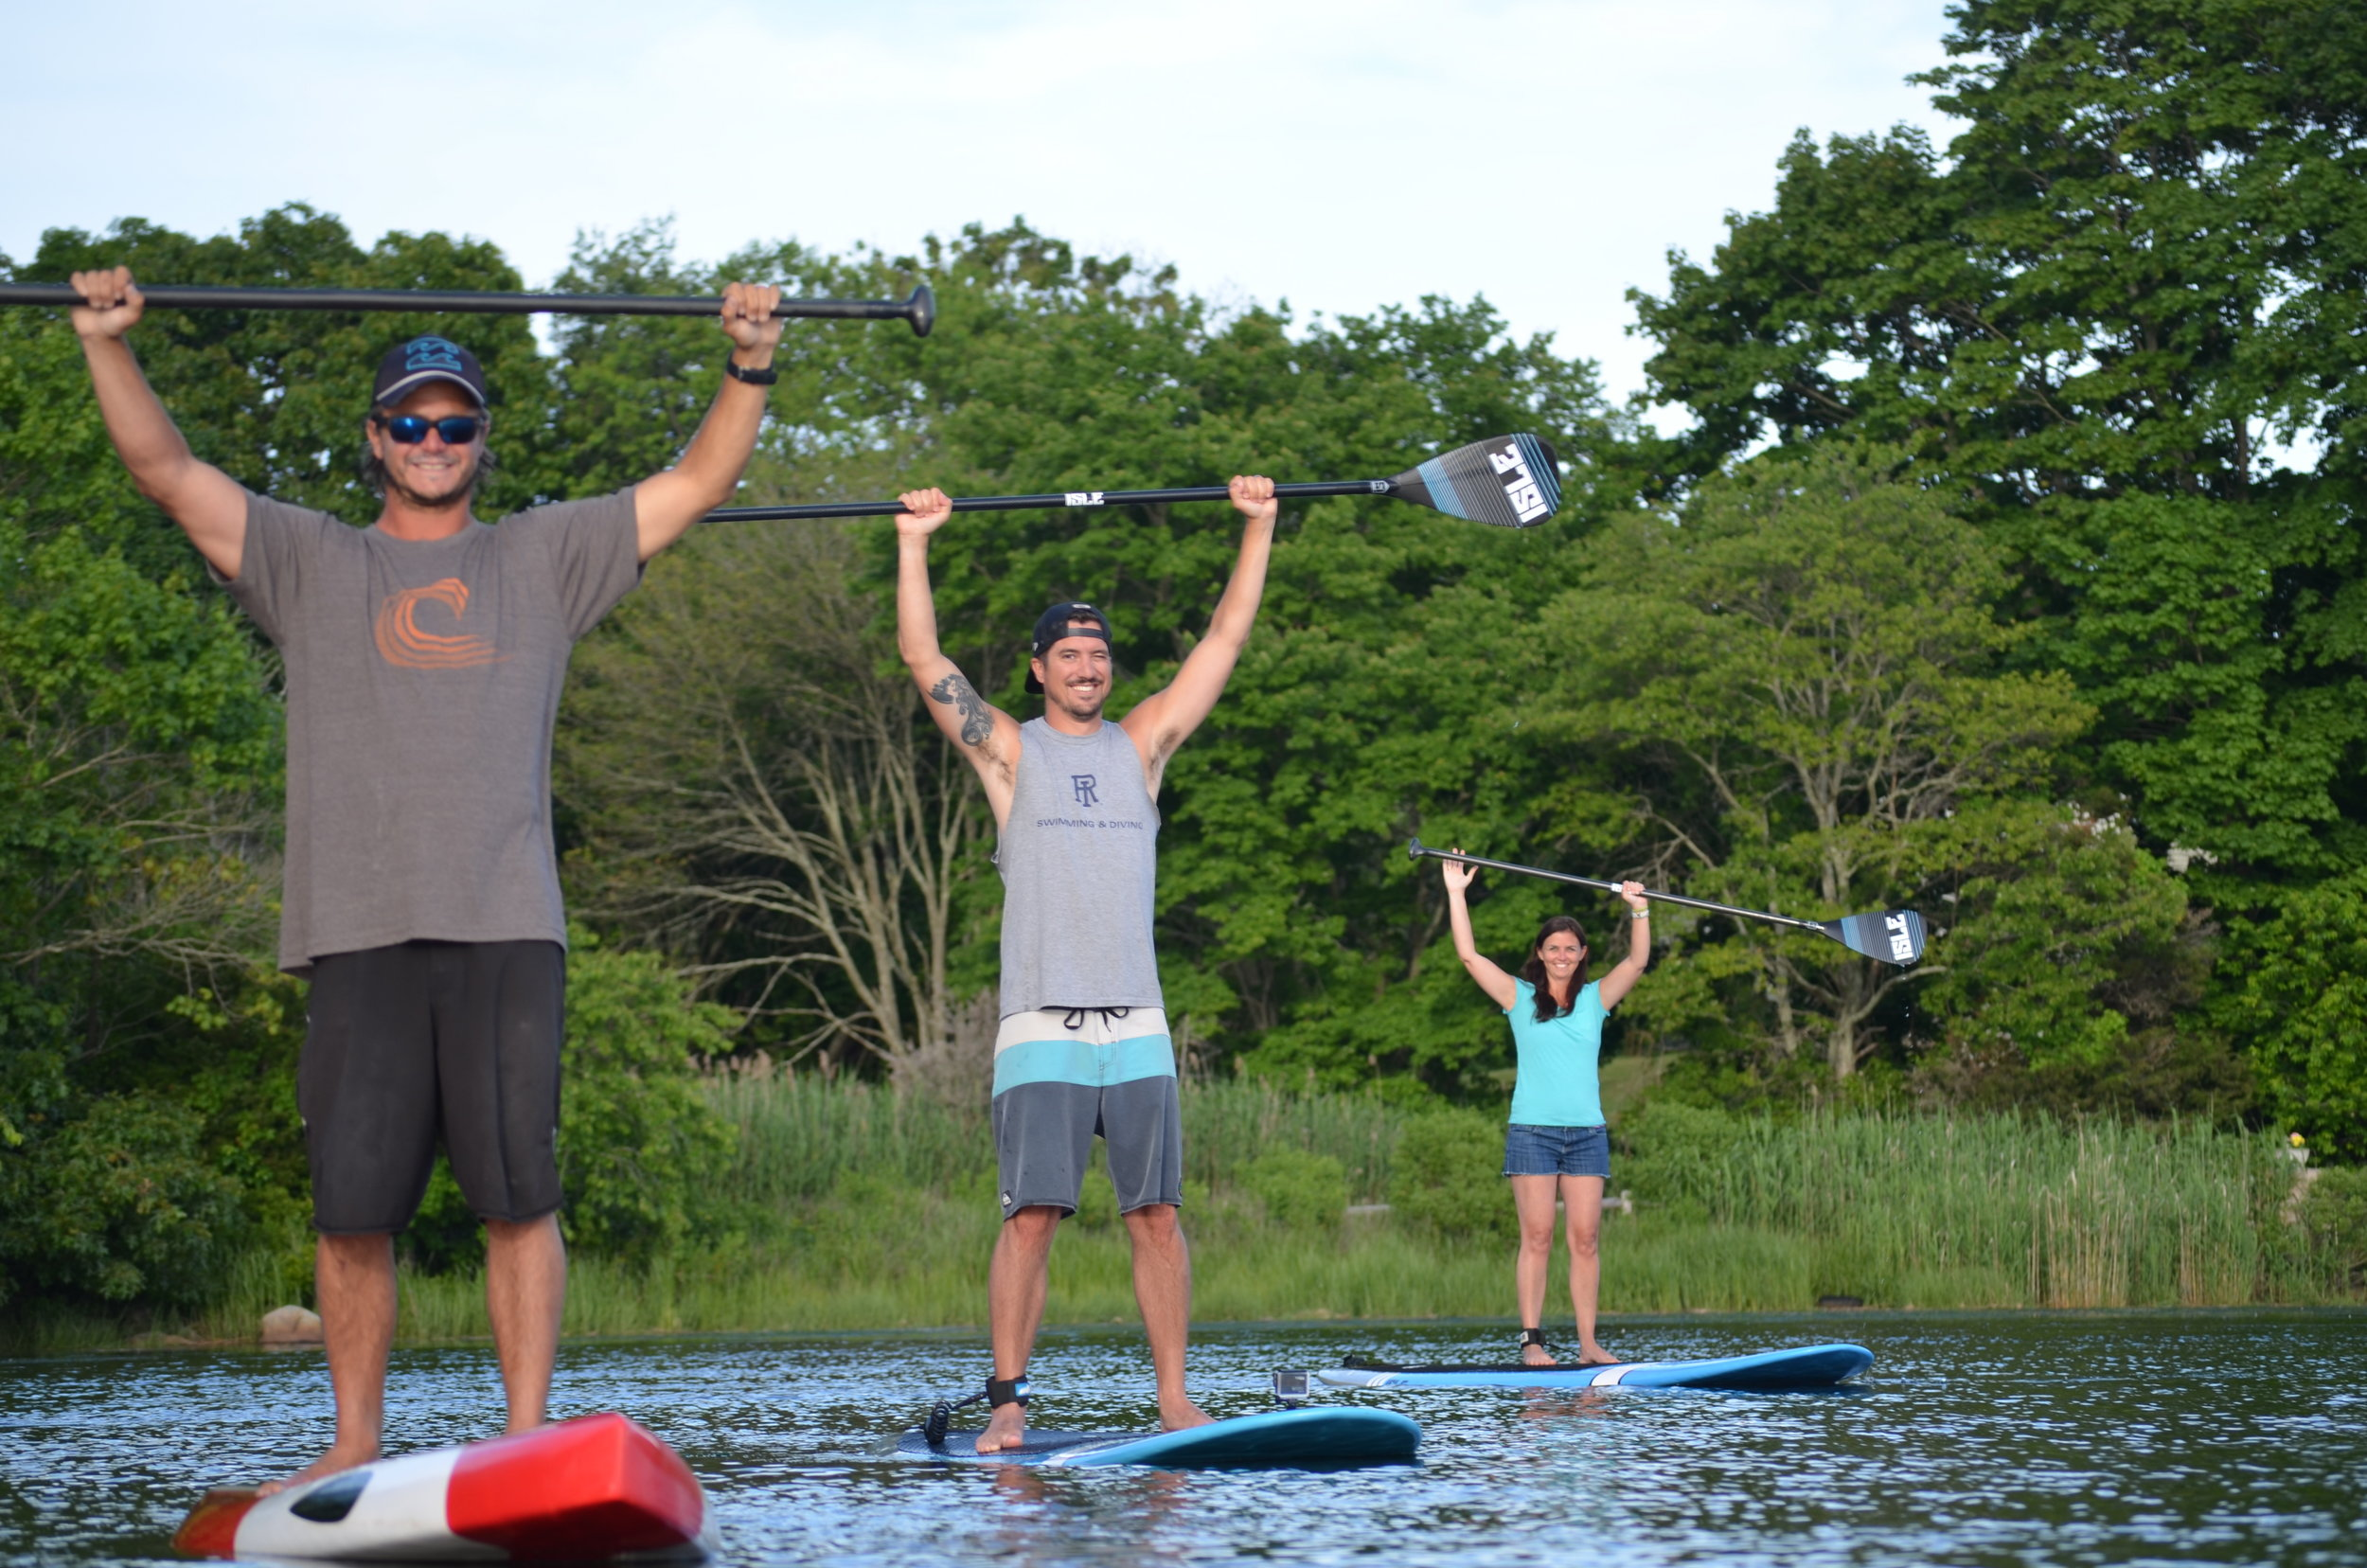 PADDLE BOARD RENTALS - Learn more…